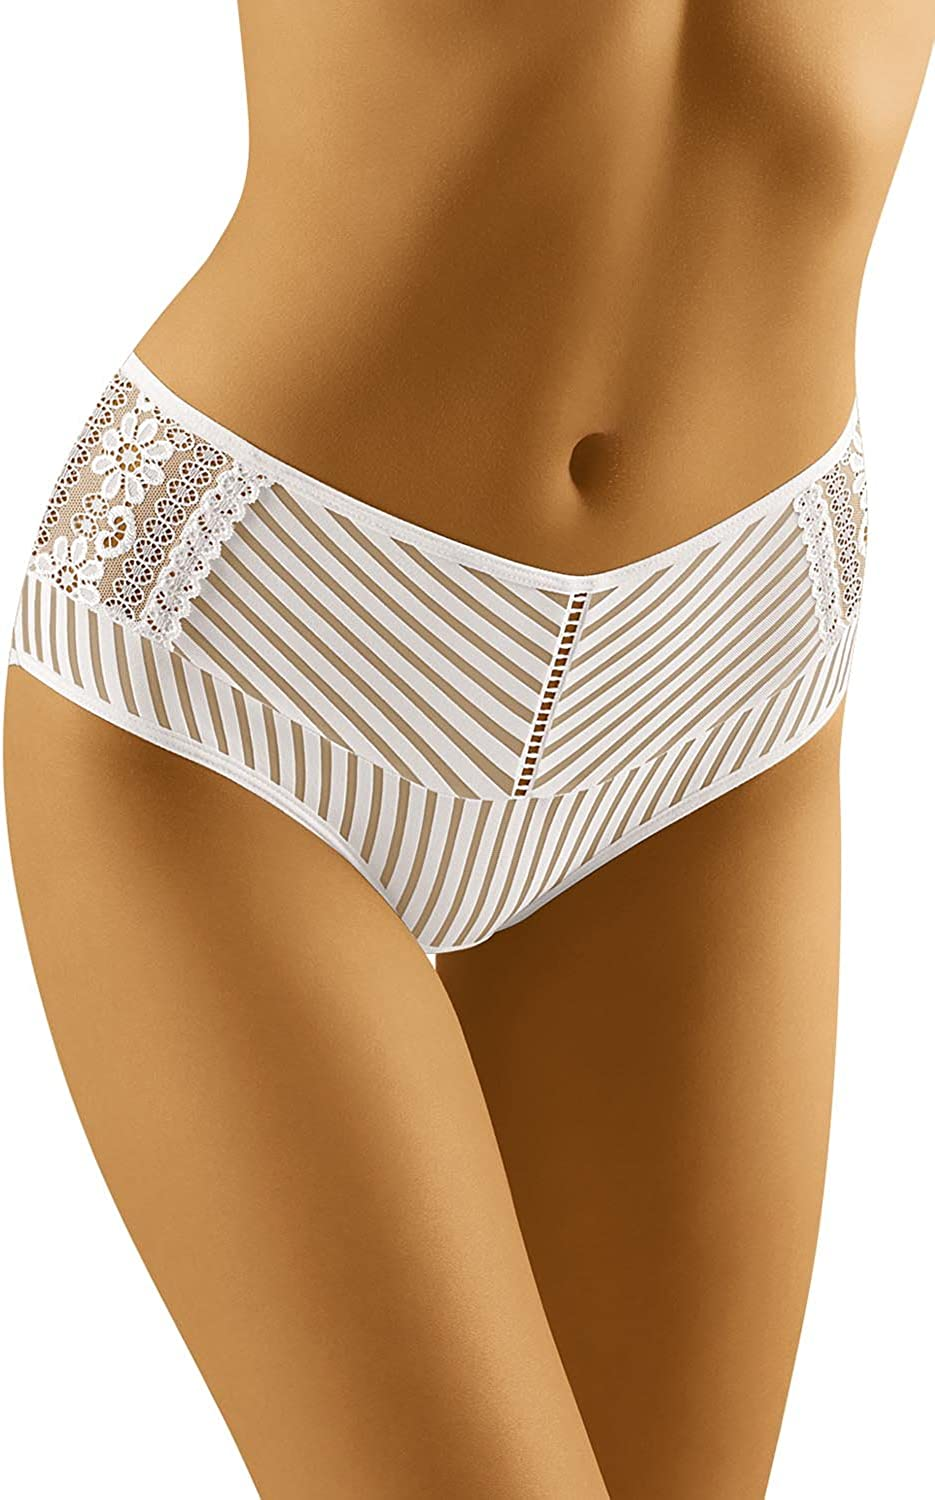 Wolbar Elegant Womens Briefs With Lace WB49 New Panties Comfortable Underwear